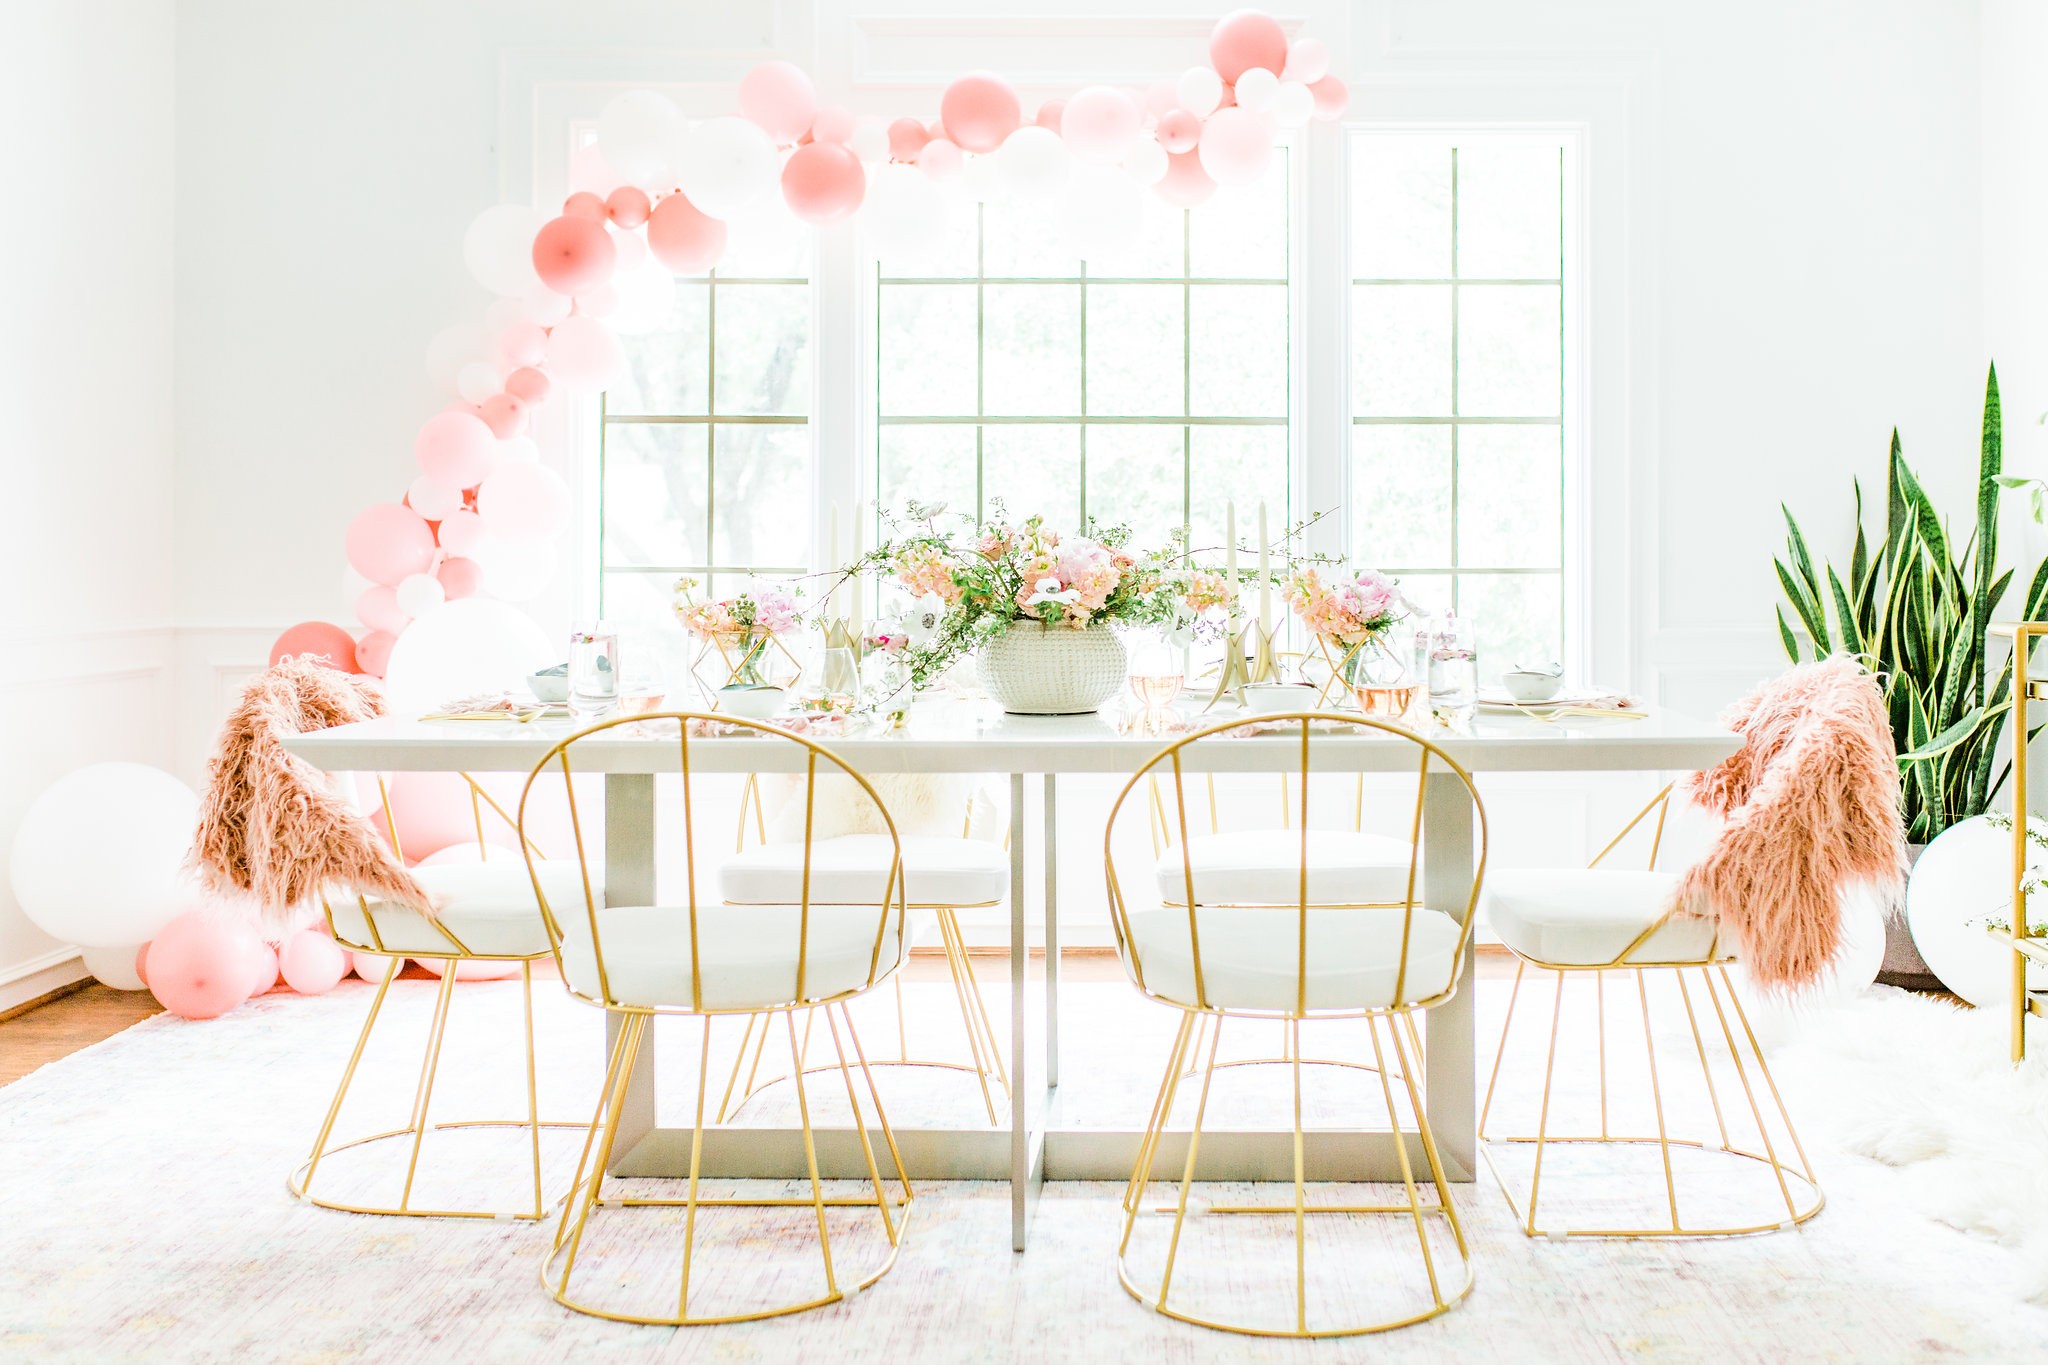 Olivia and Oliver Gold, Blush and Greenry Plants Gilded Garden Styled Bridal Shower Brunch with Bed Bath Beyond Eurostyle Tosca Dining Table with Magnolia Home by Joanna Gaines Ophelia 9'6 x 12'6 Area Rug in Berry/Multi Joyfullygreen3.jpg